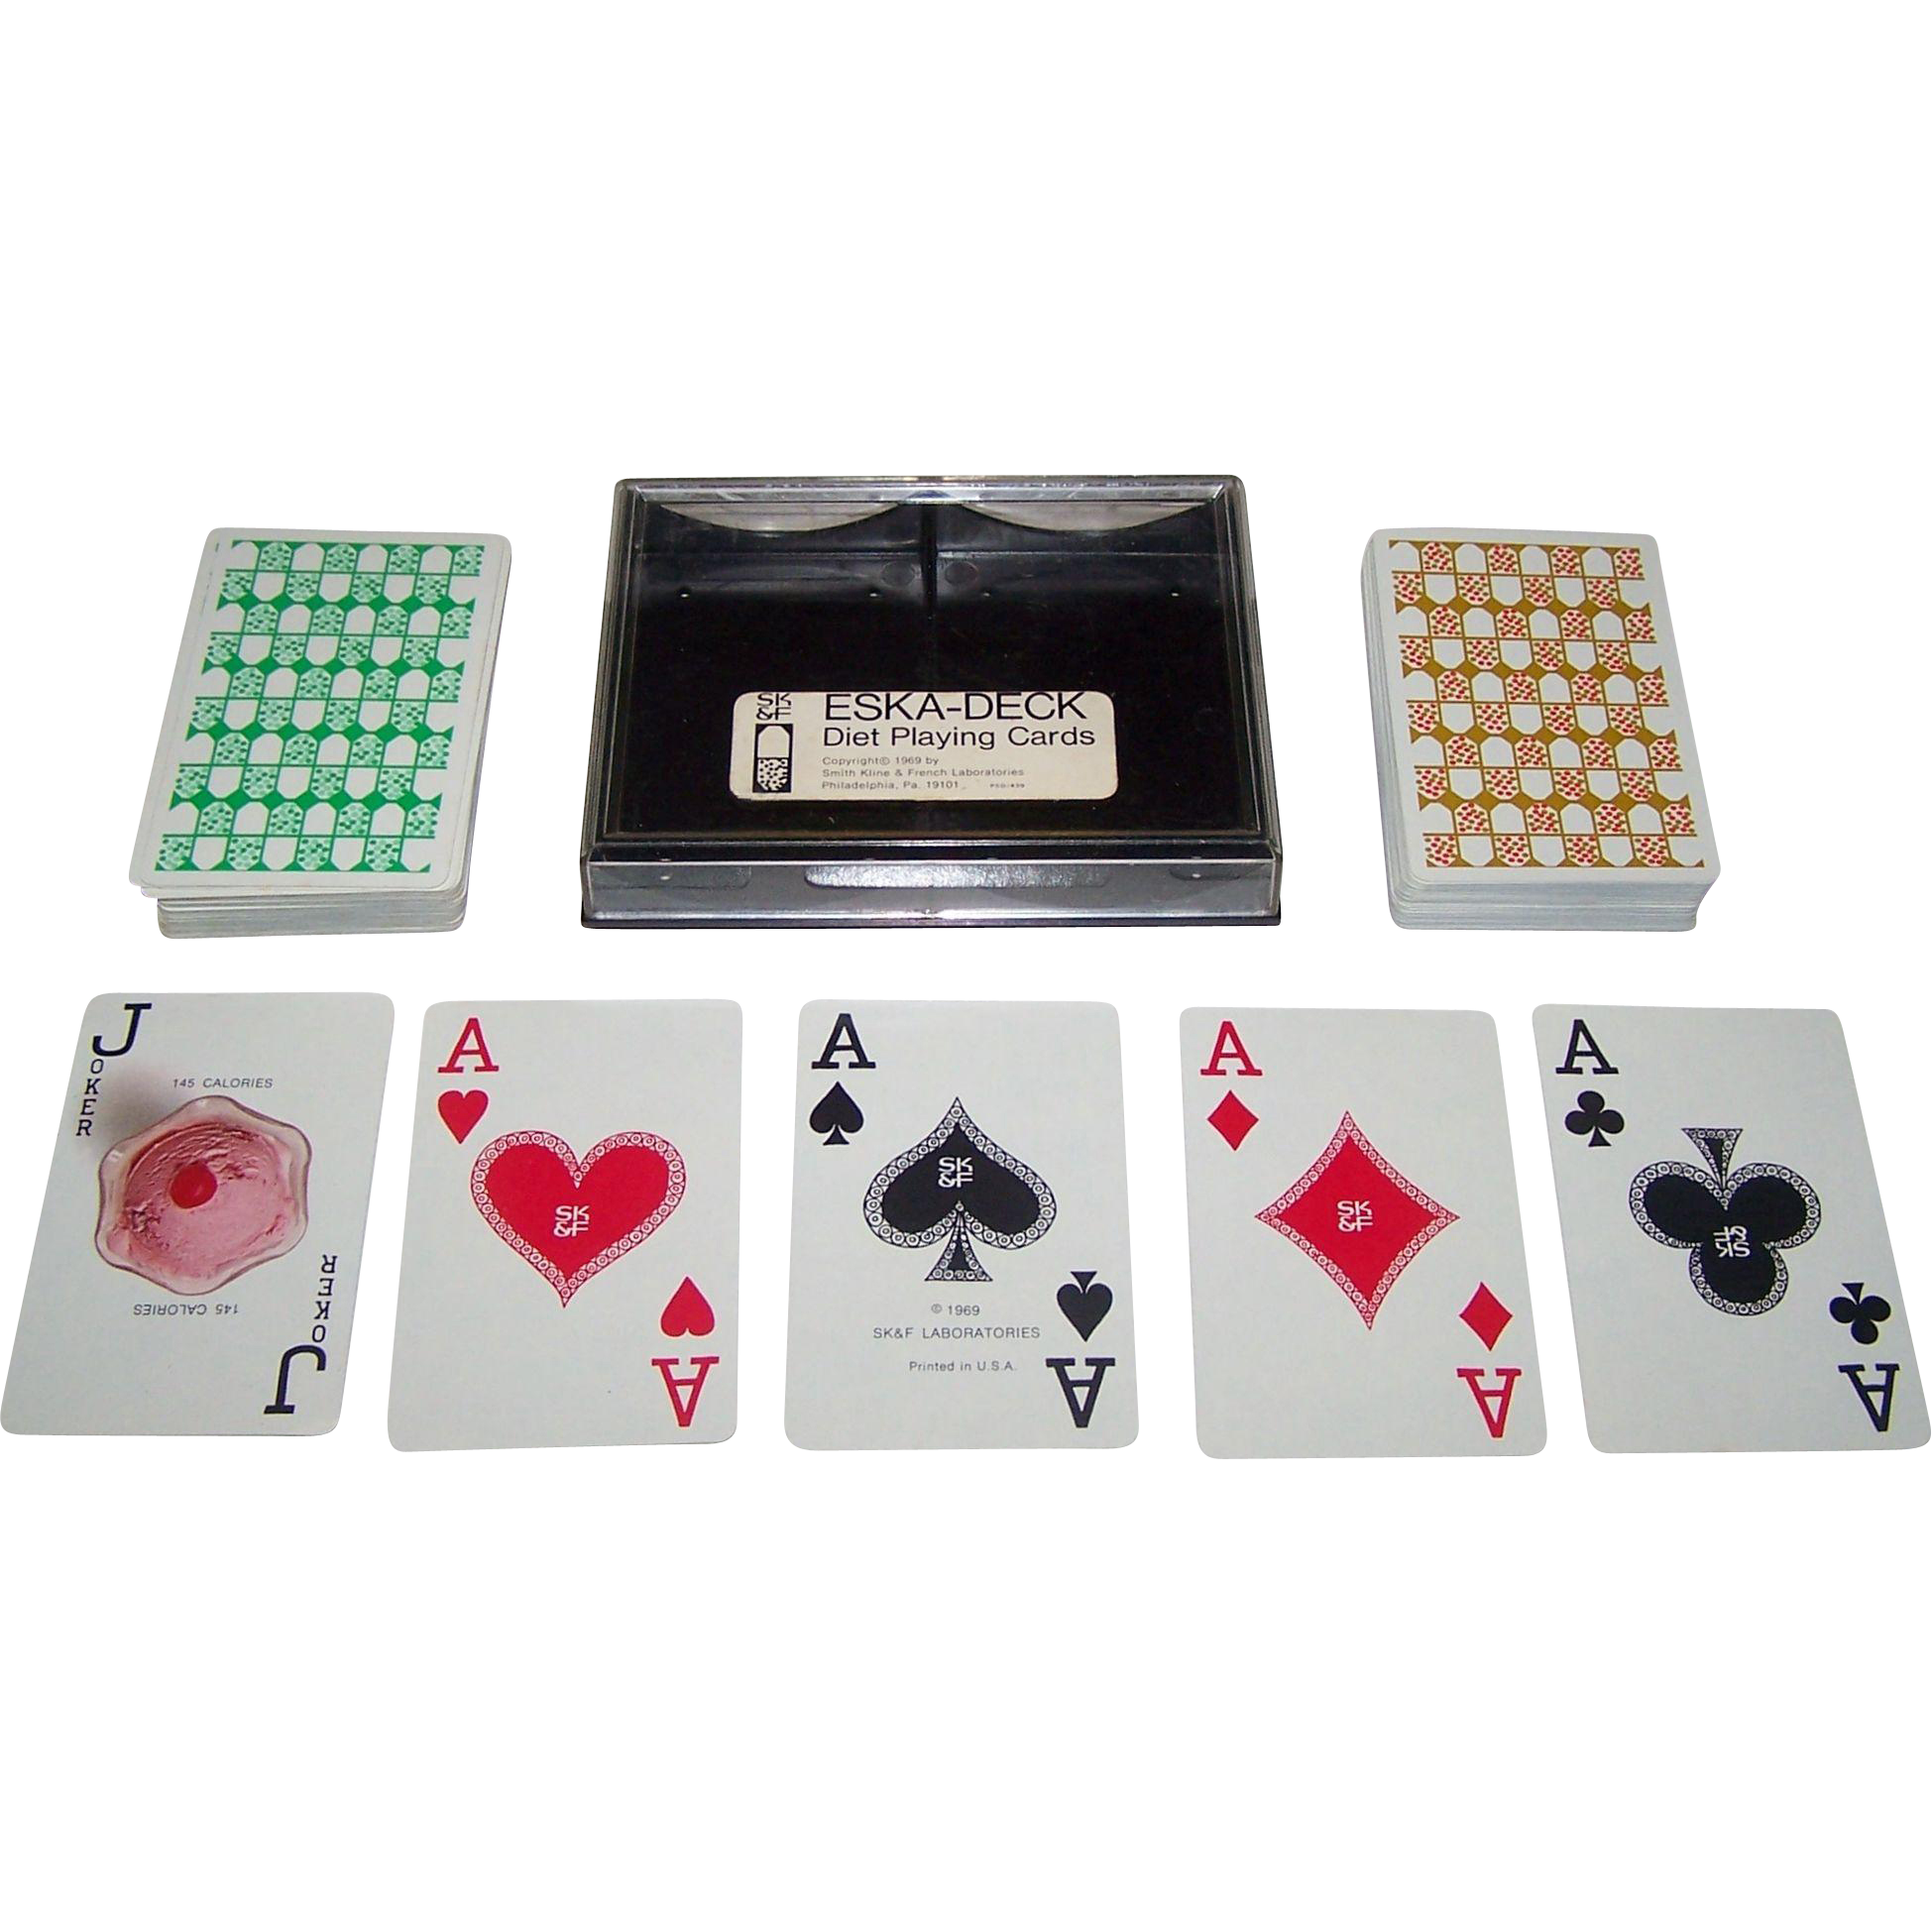 "Double Deck Arrco ""Eska-Deck"" Playing Cards, c.1969"